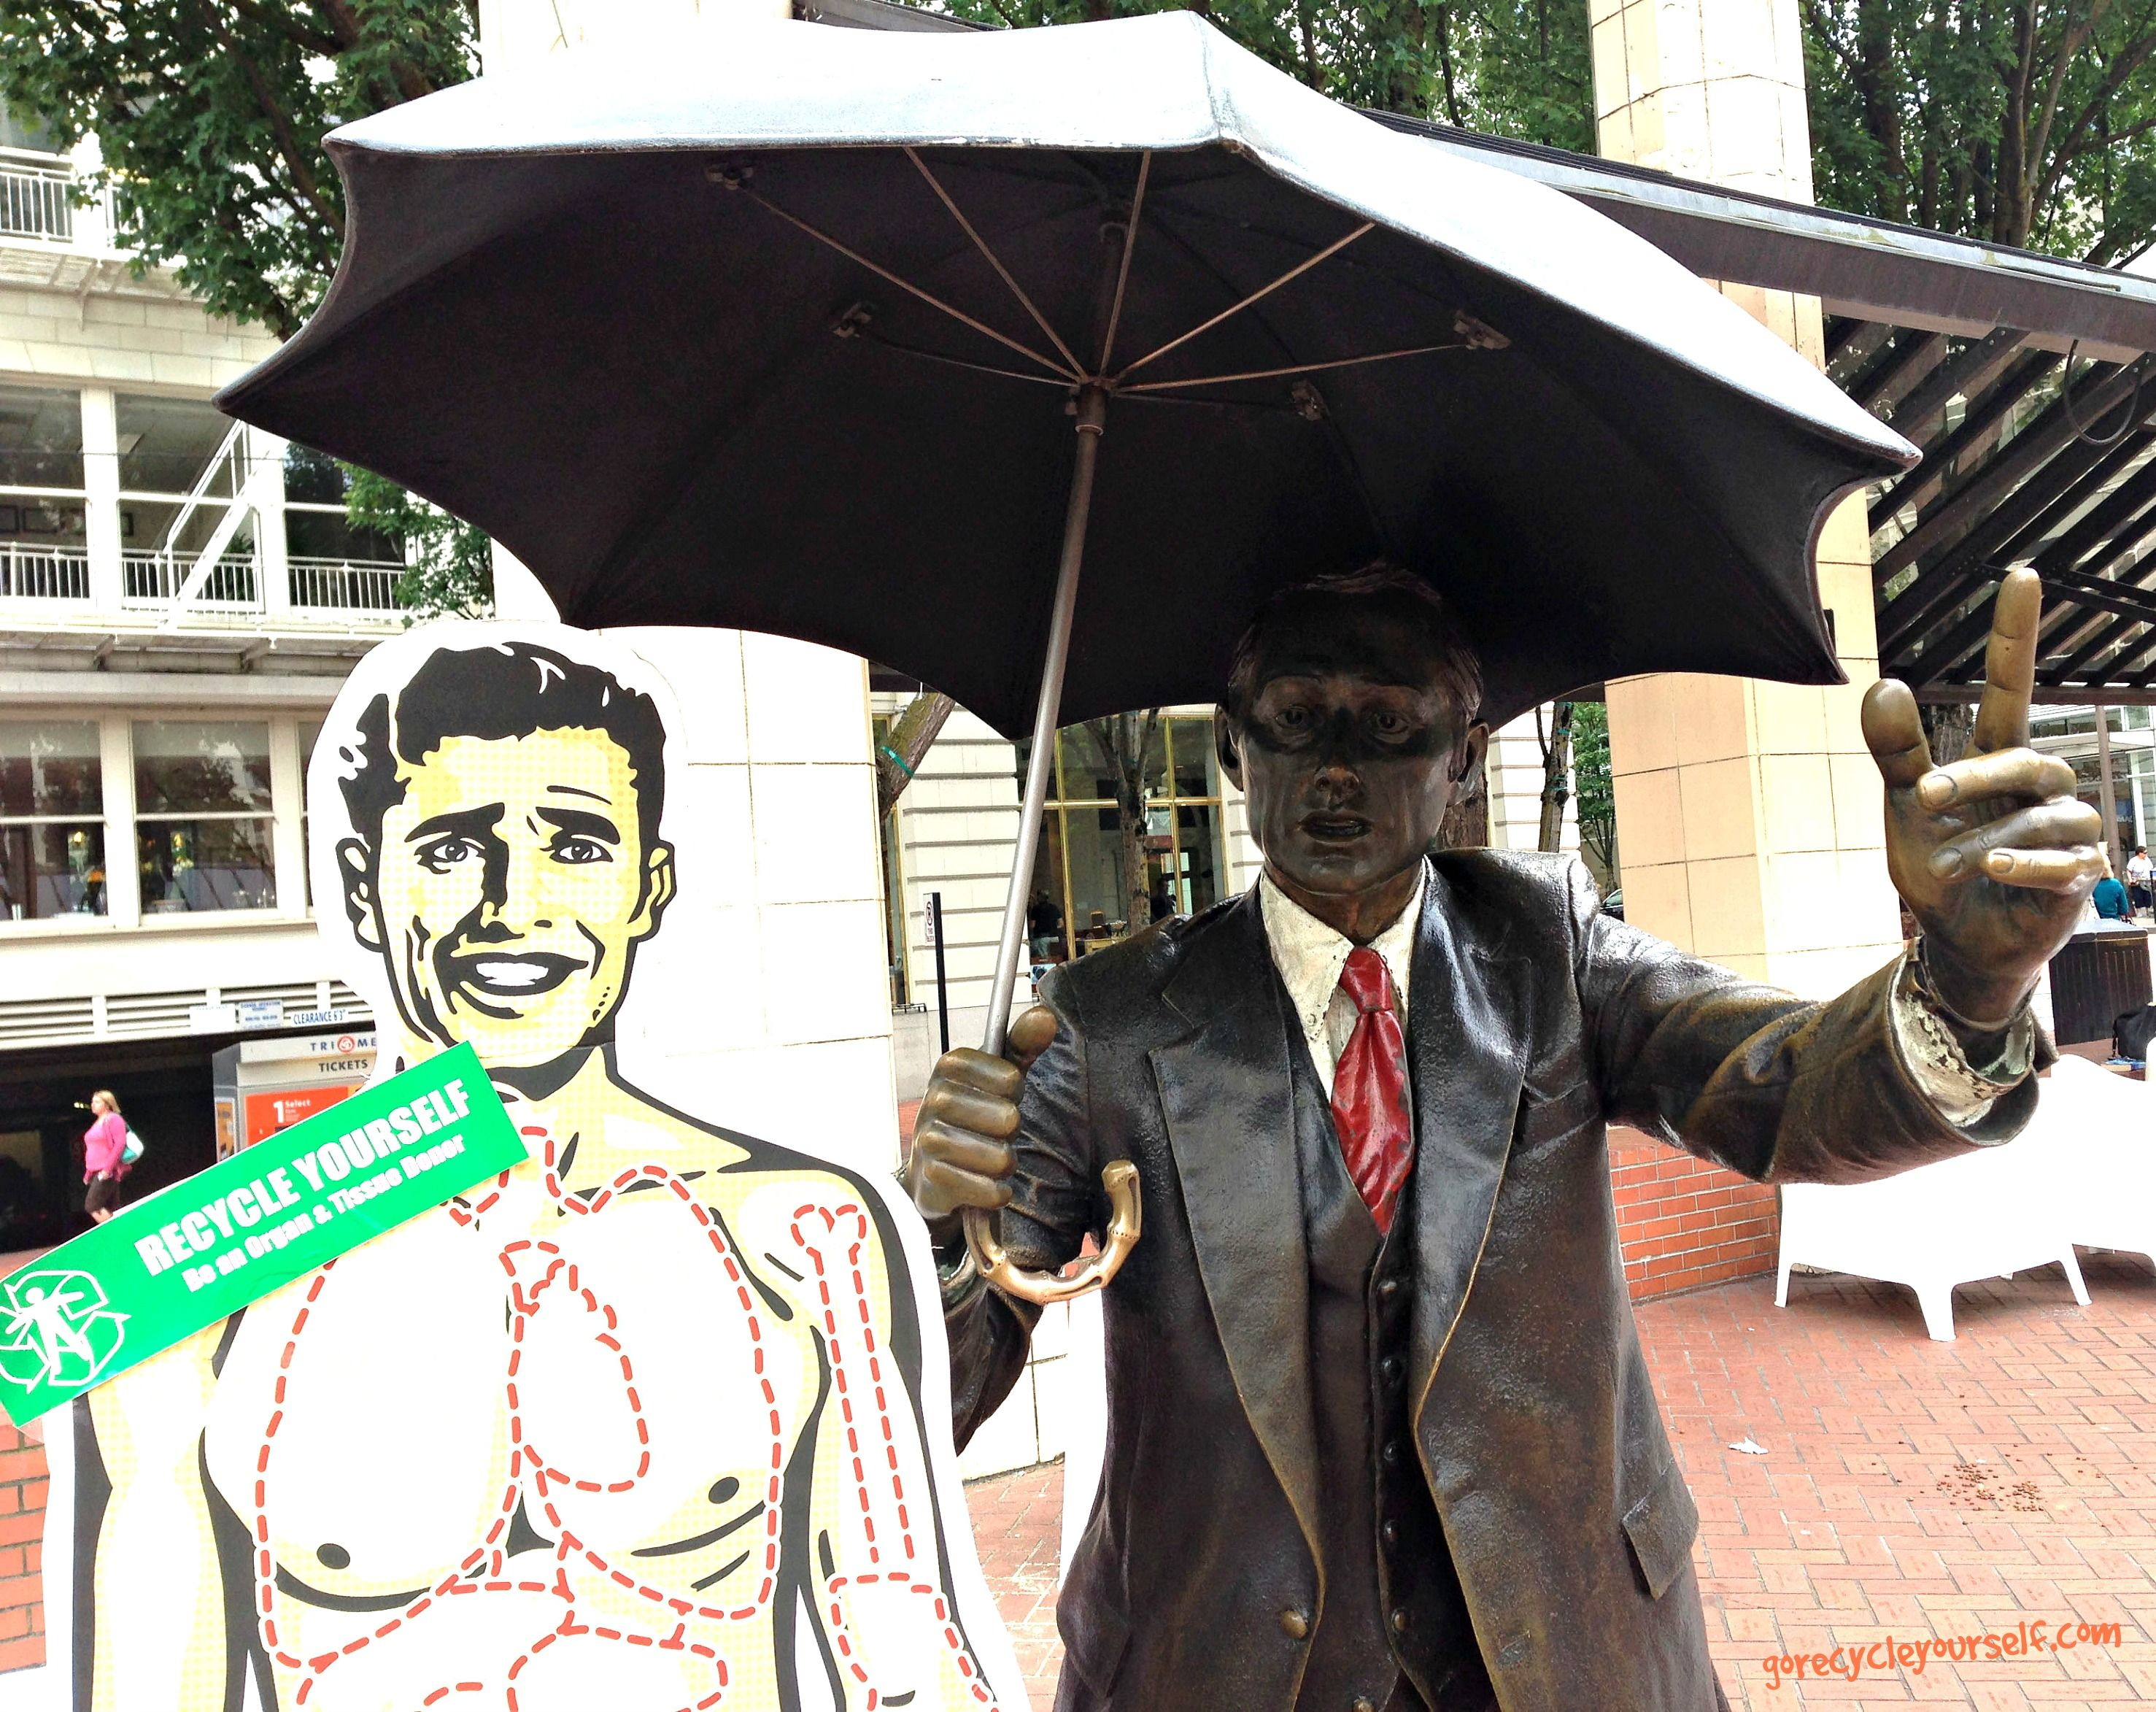 The #rain won't stop ScalpelPal from spreading the word about #organdonation! (BONUS POINTS if you can name his location!!) #donatelife #gorecycleyourself